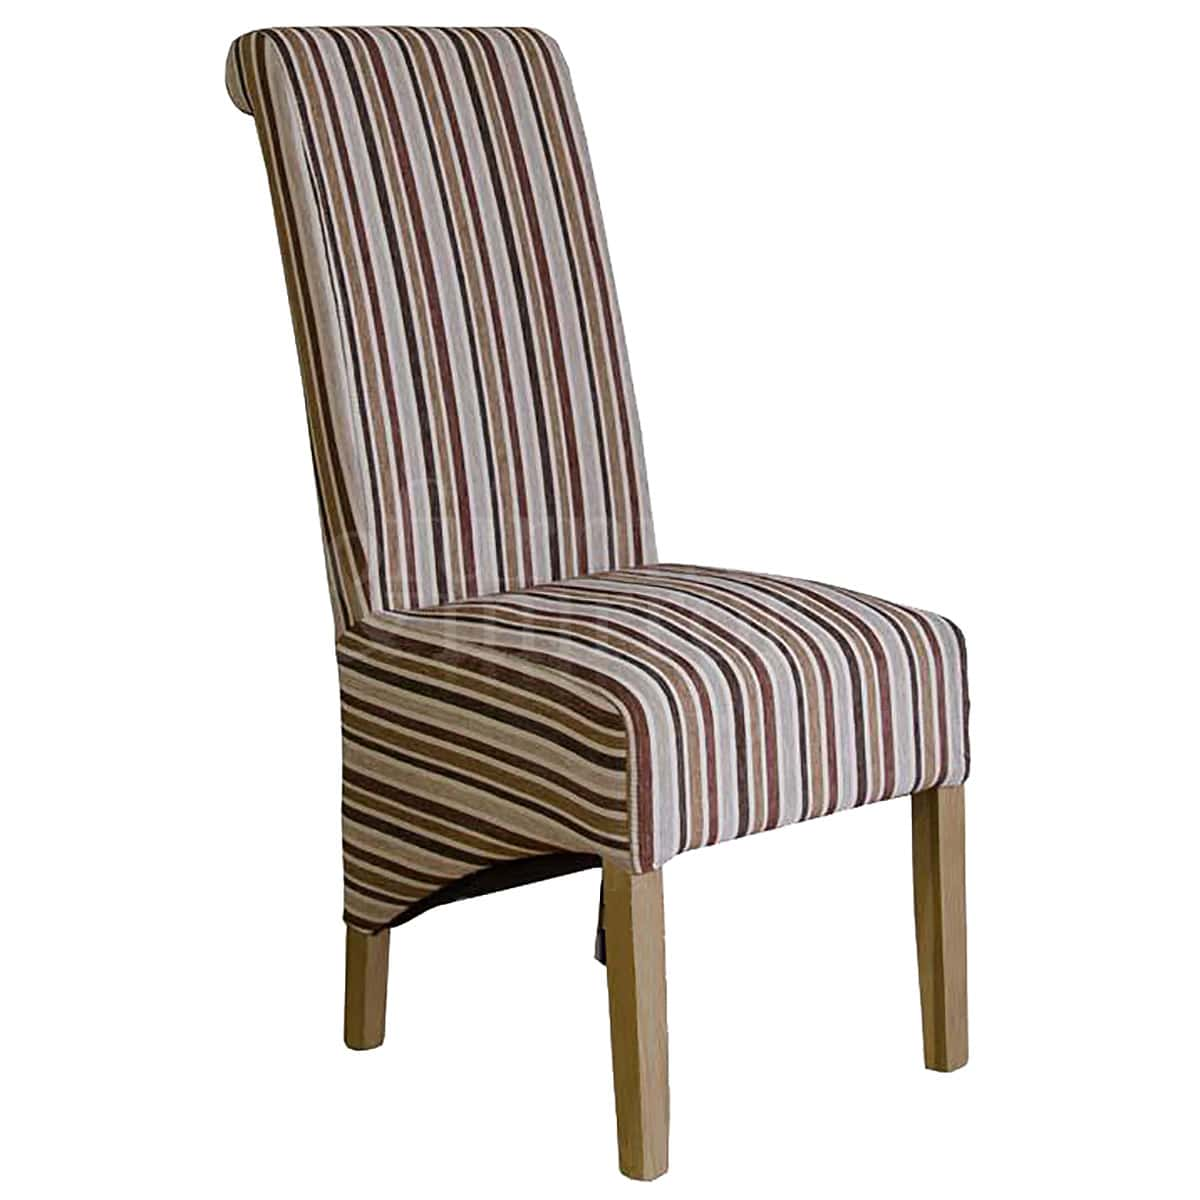 Striped Dining Room Chairs: Rollback Royal Striped Fabric Dining Chair